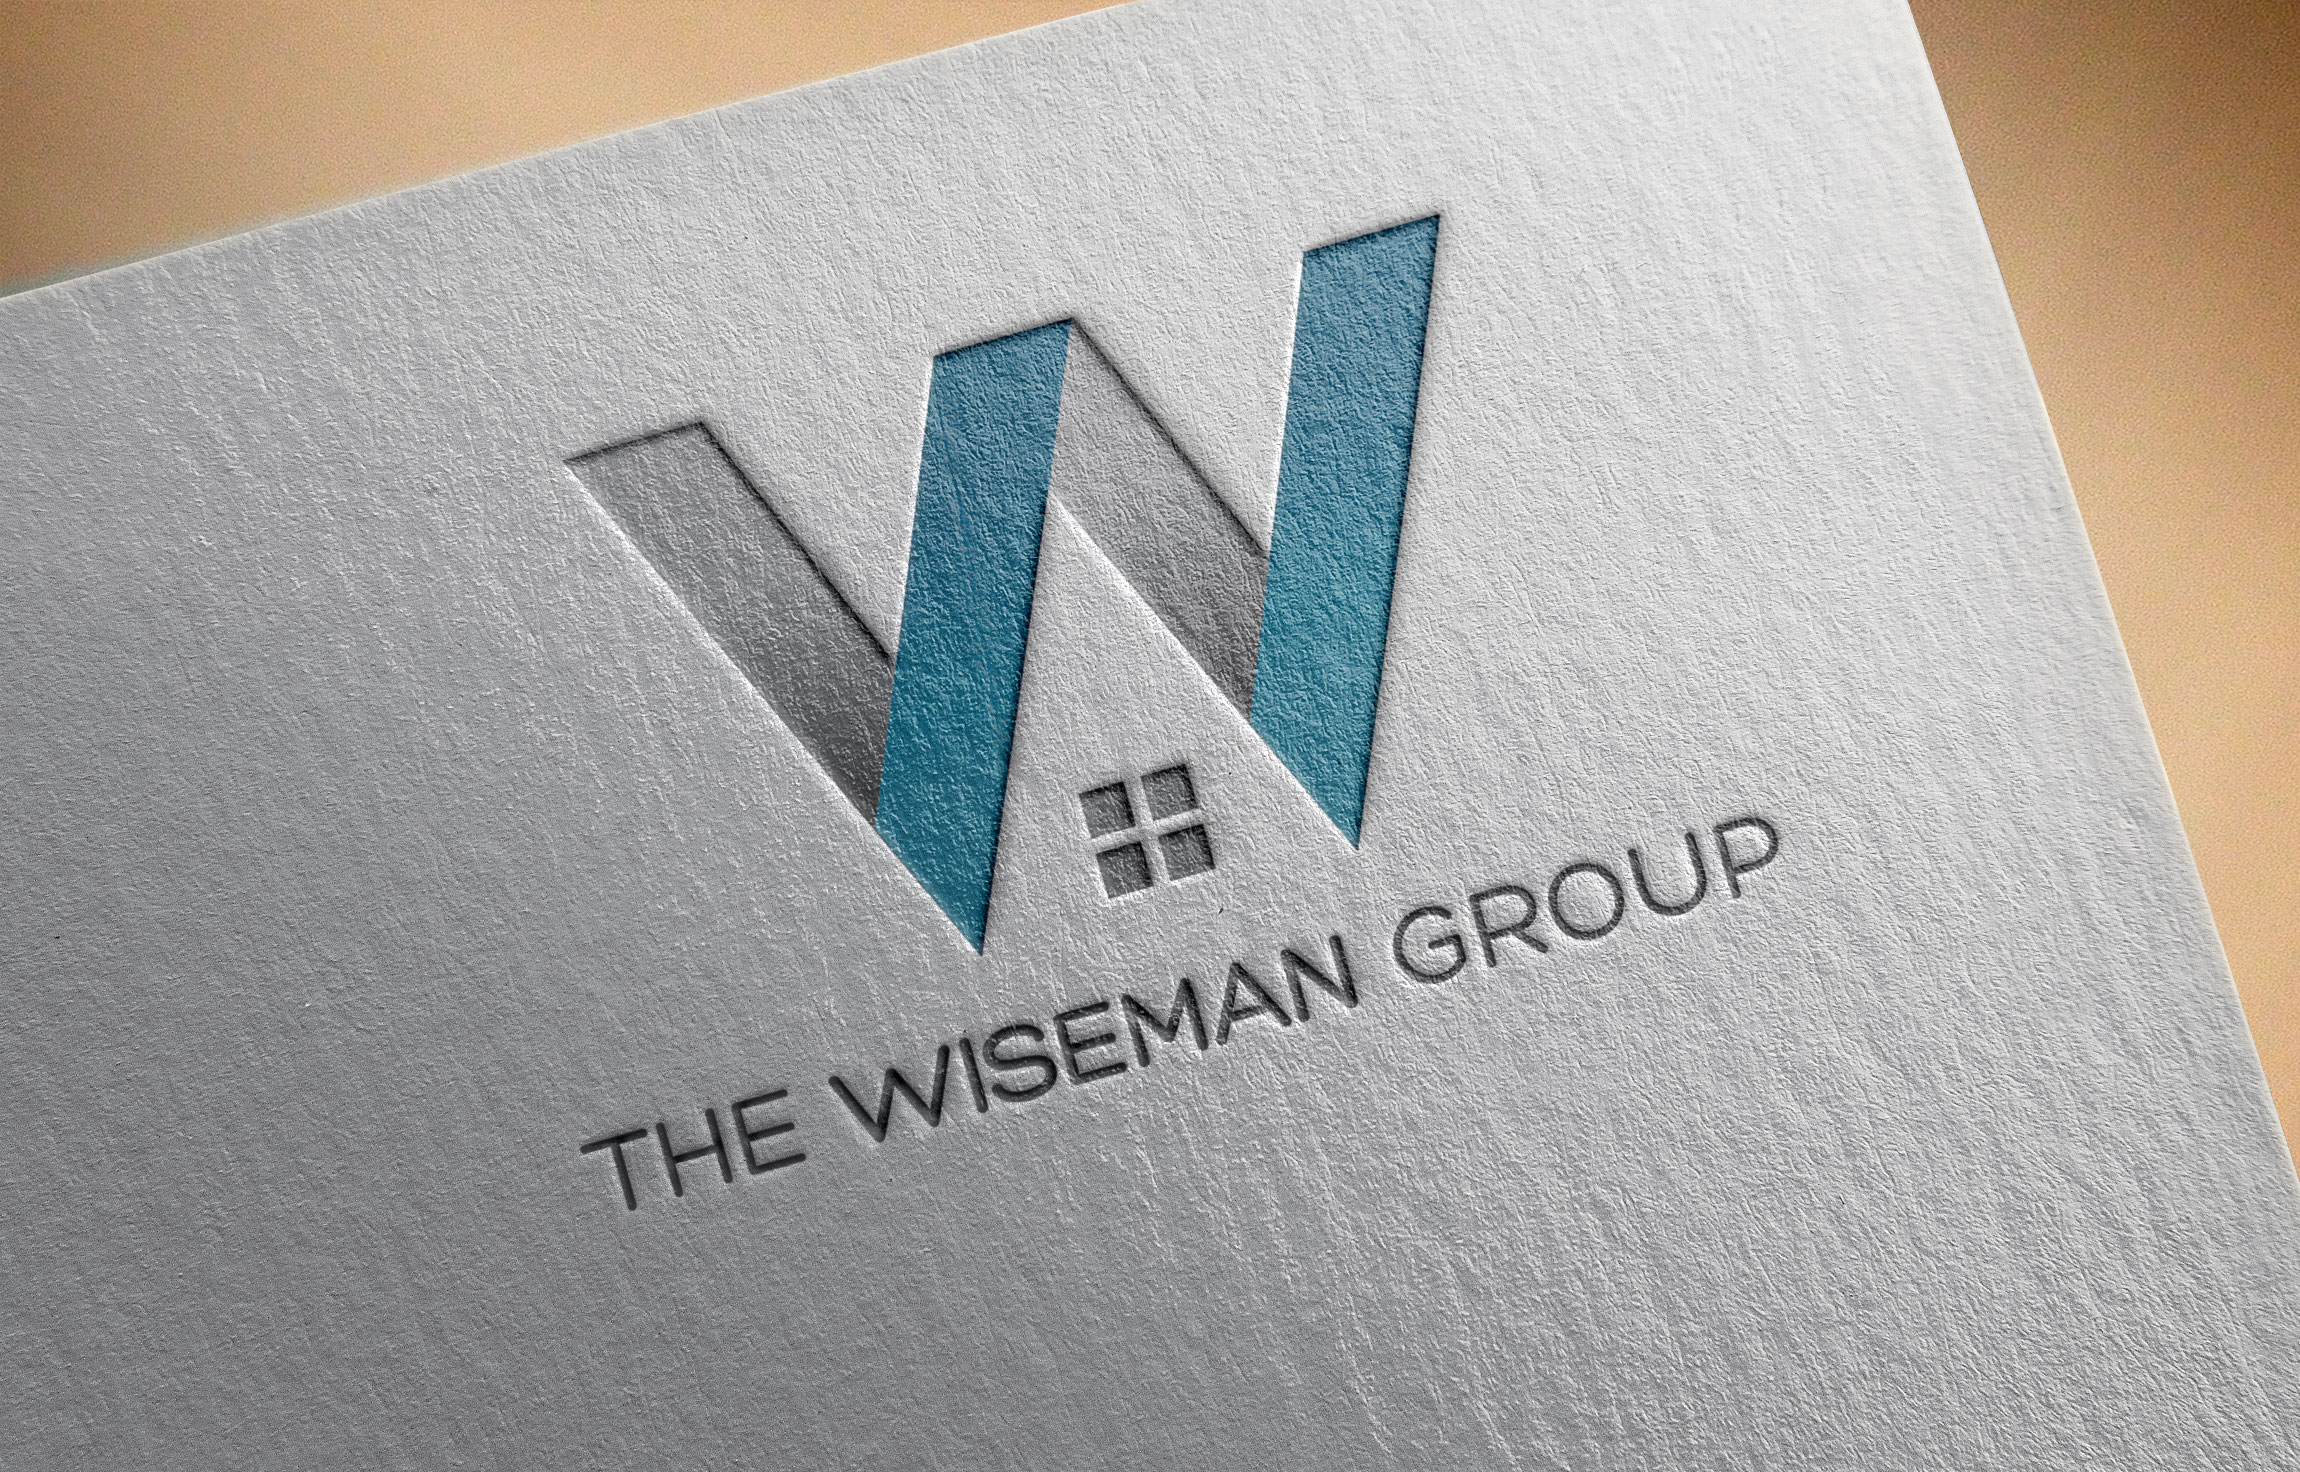 LOGO_Wiseman-Group-Mockup